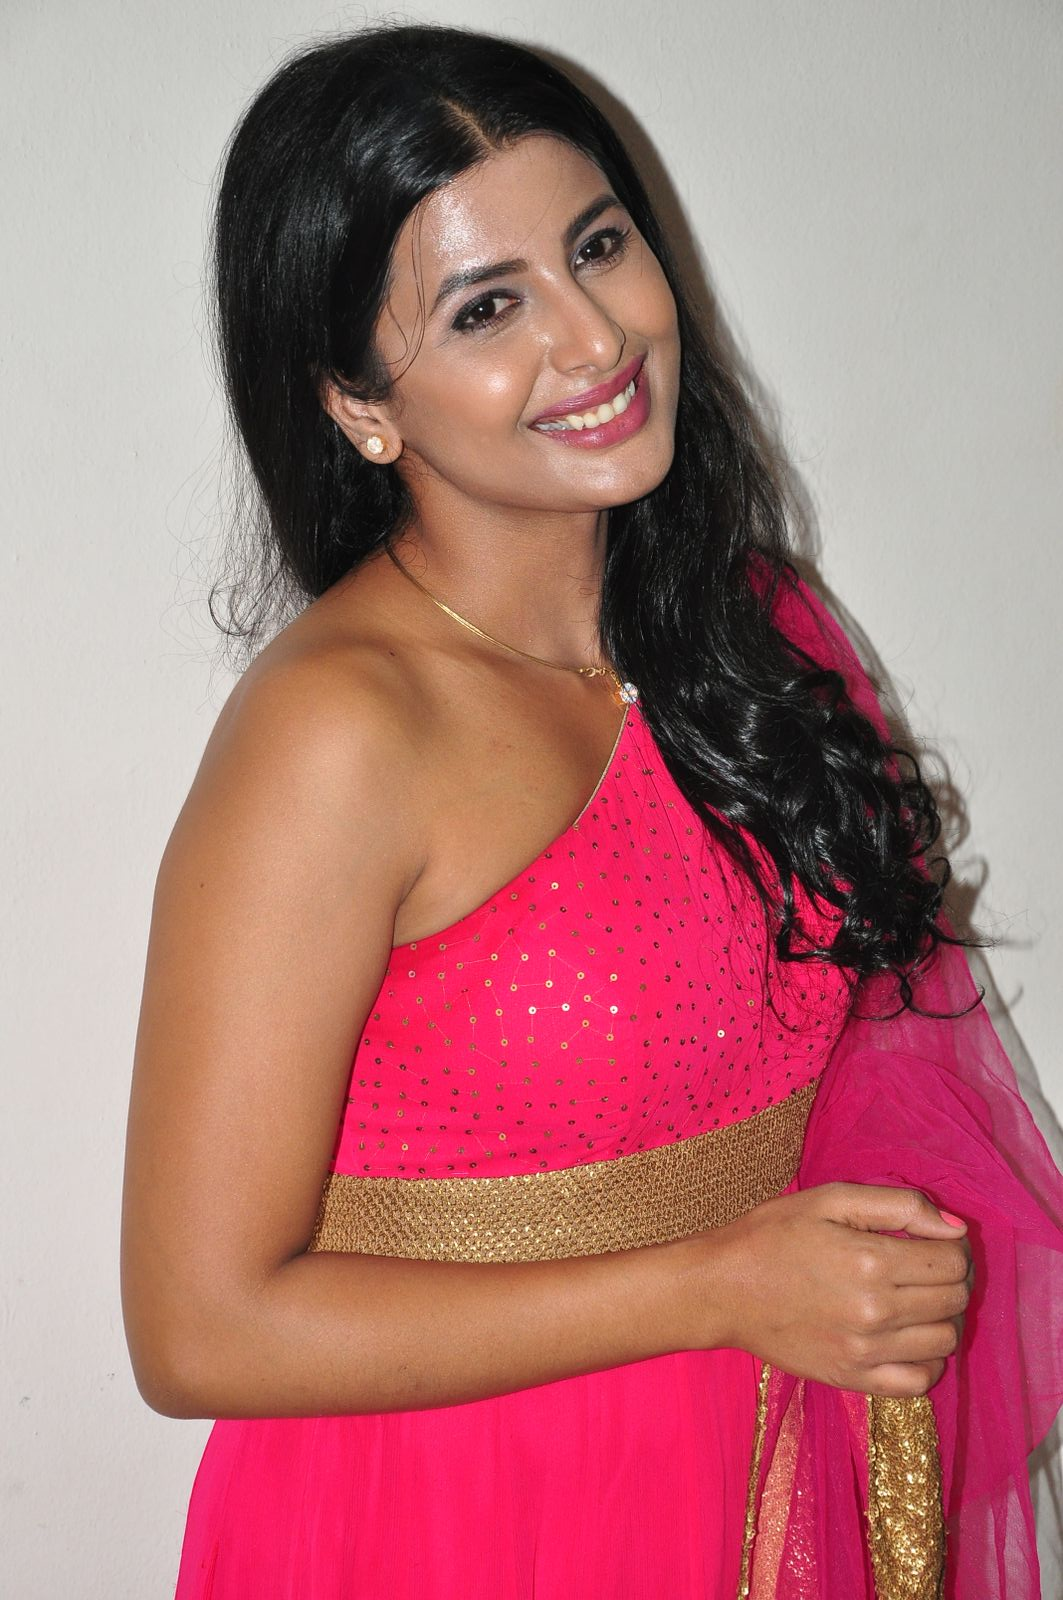 Rajshri Ponnappa Hot Photos In Pink Dress